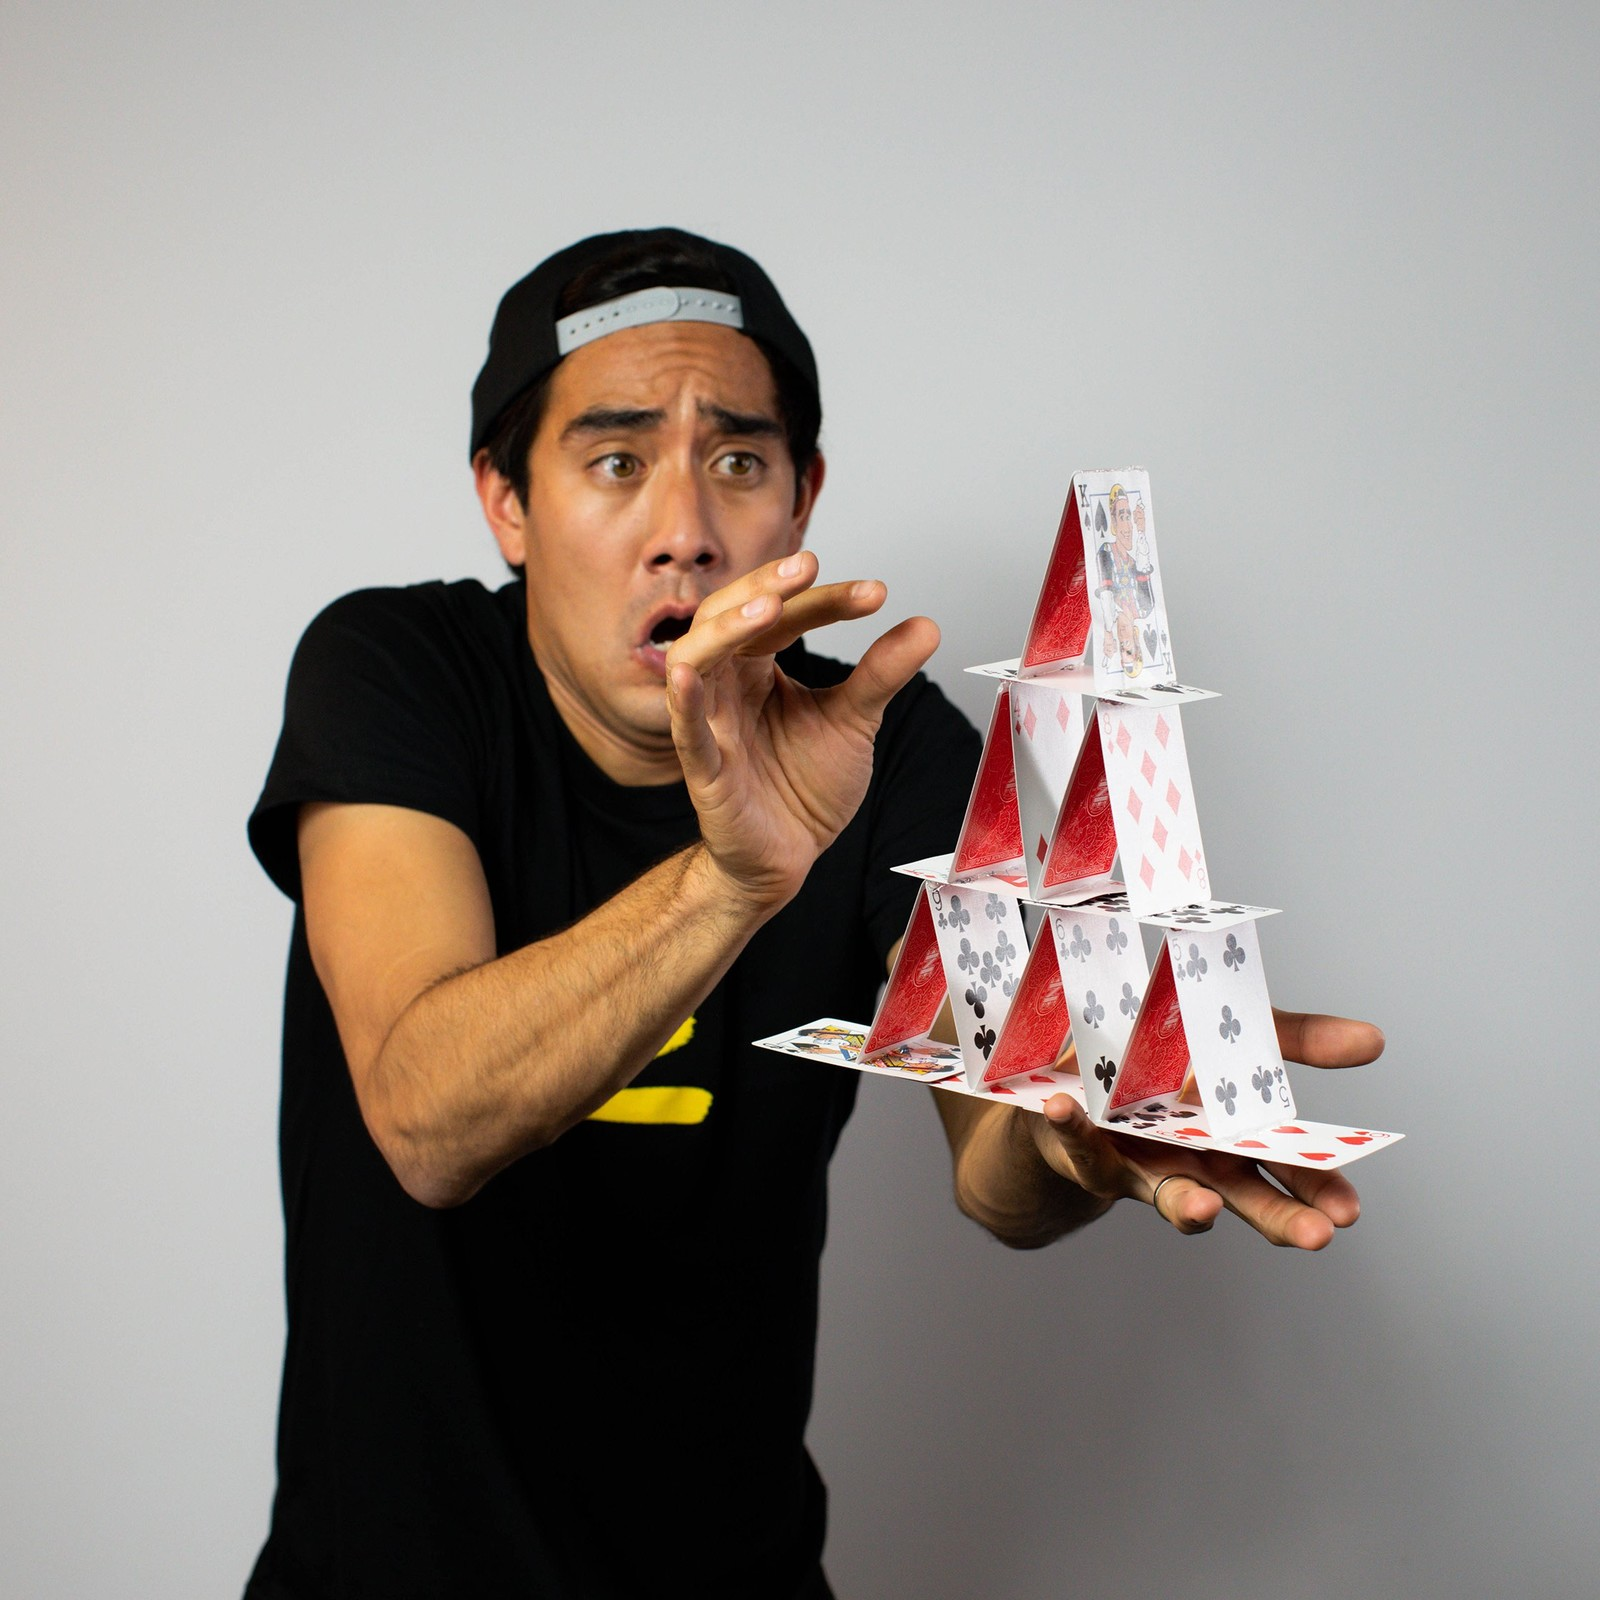 Zach King playing with his themed card deck